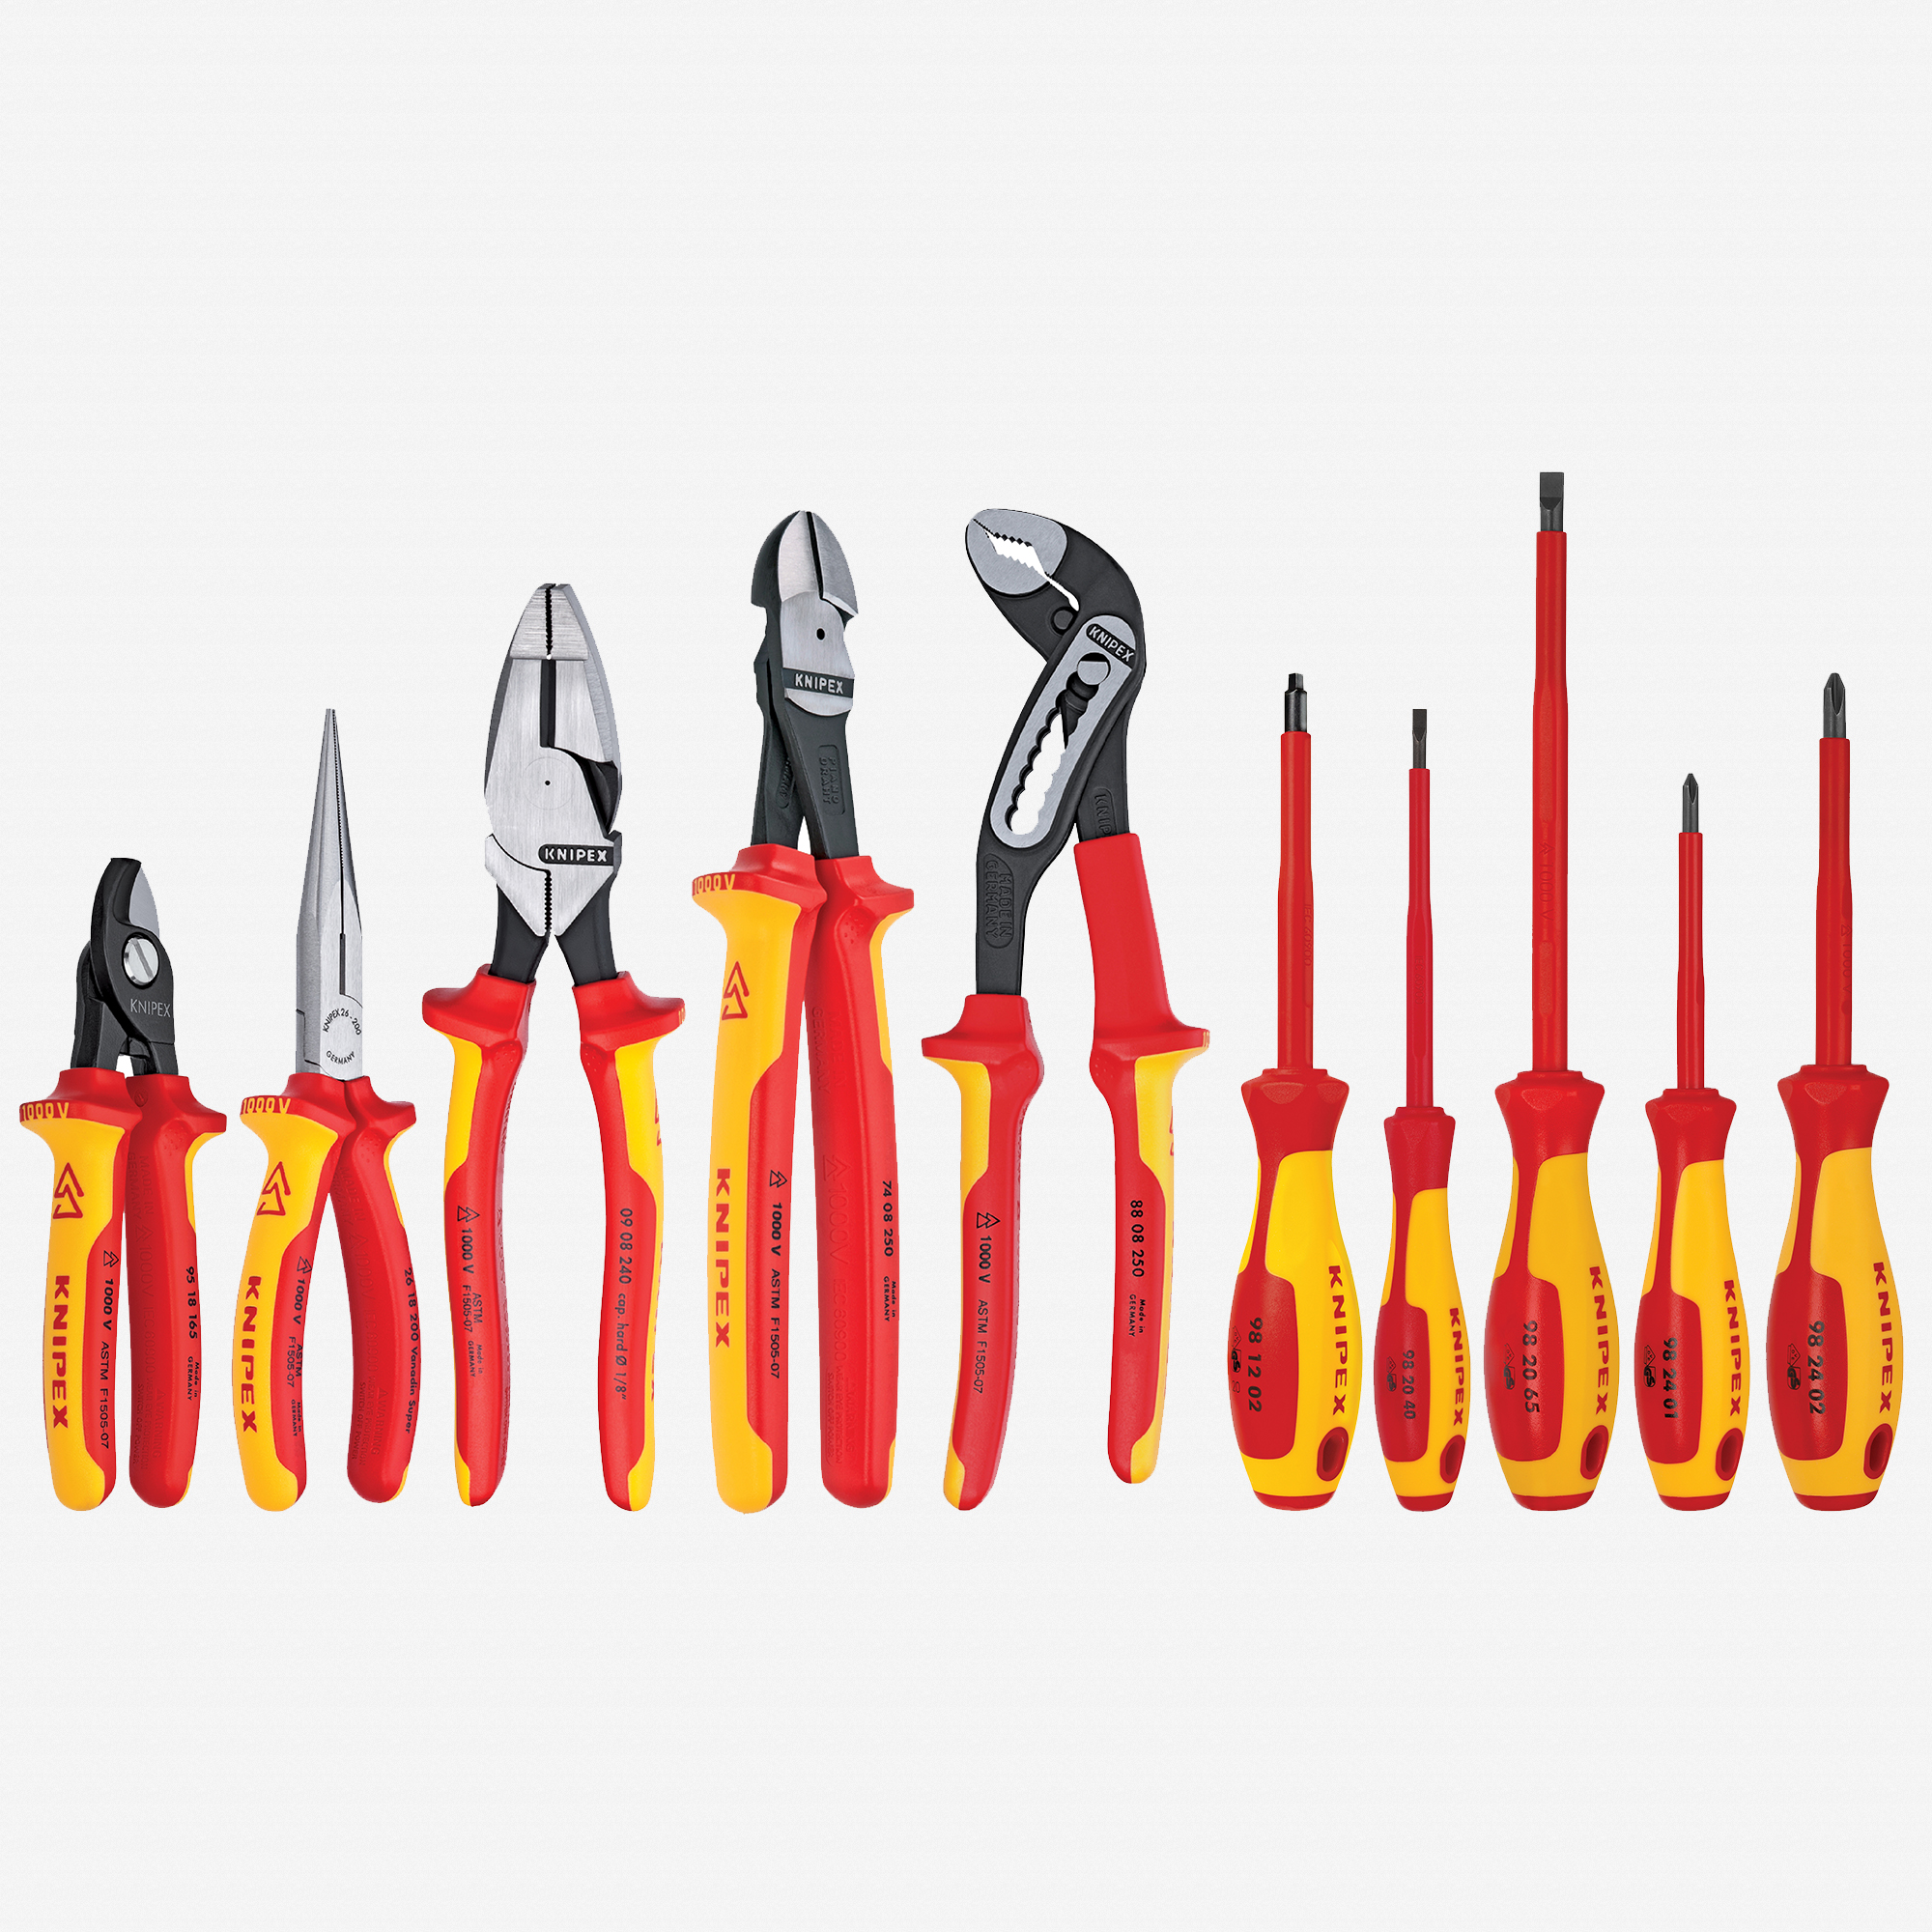 Knipex 9K-98-98-31-US 10 Piece Pliers / Screwdriver Tool Set - 1,000V Insulated, Hard Case, w/Lineman Pliers